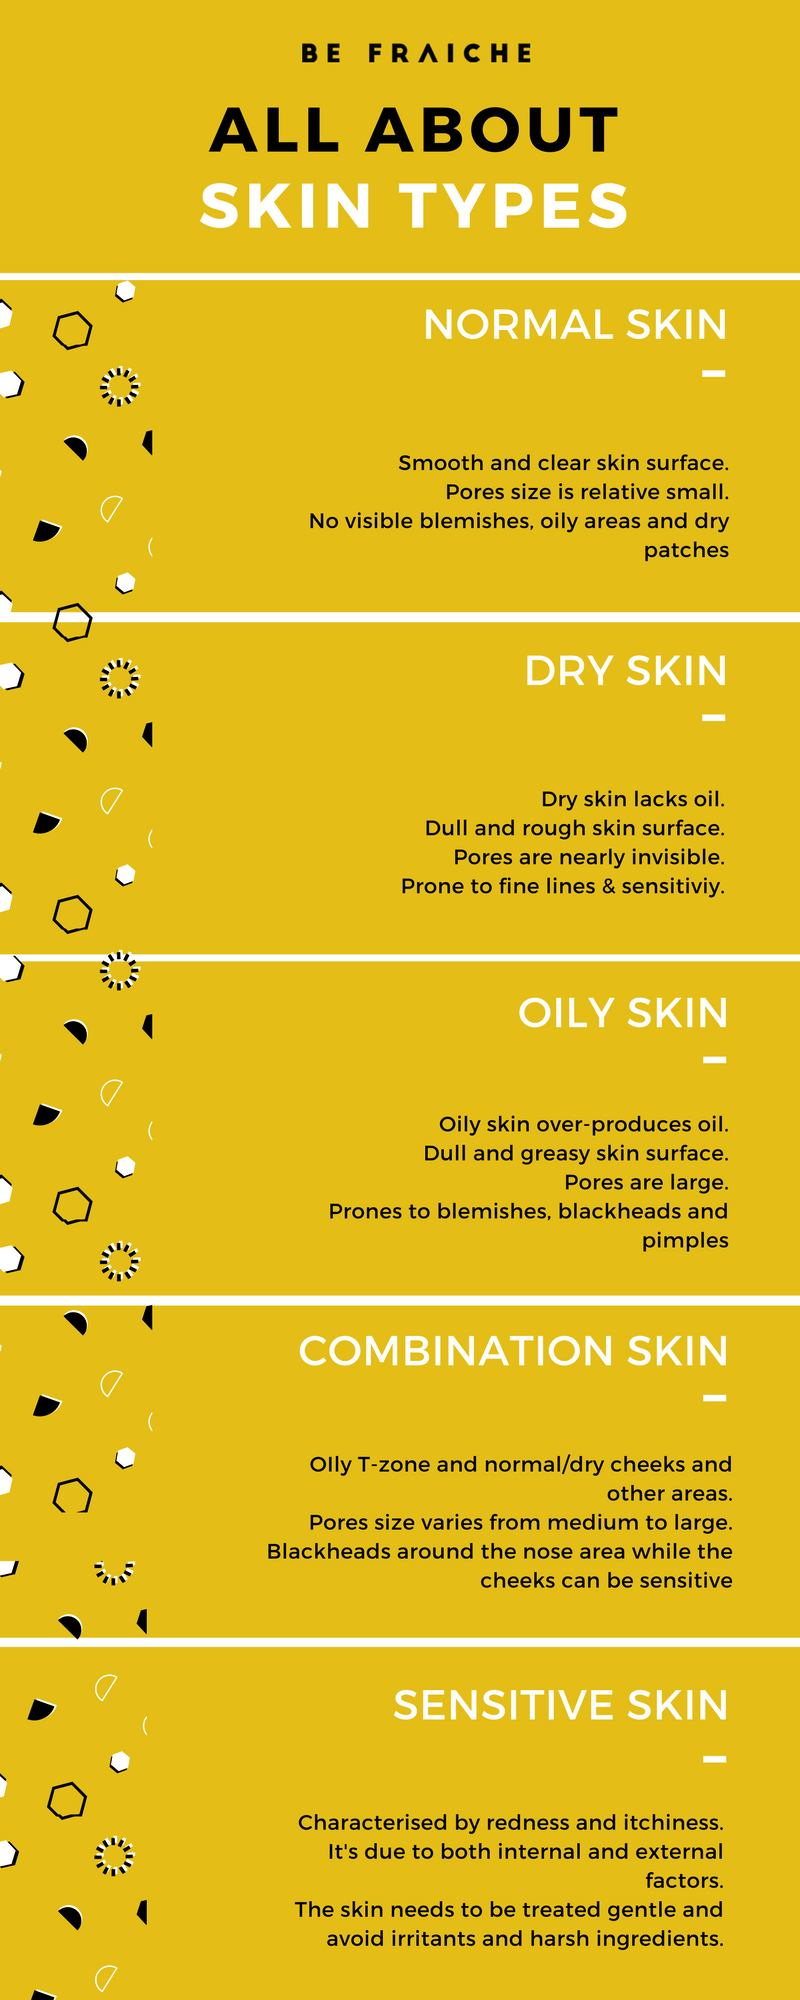 How to define my skin type